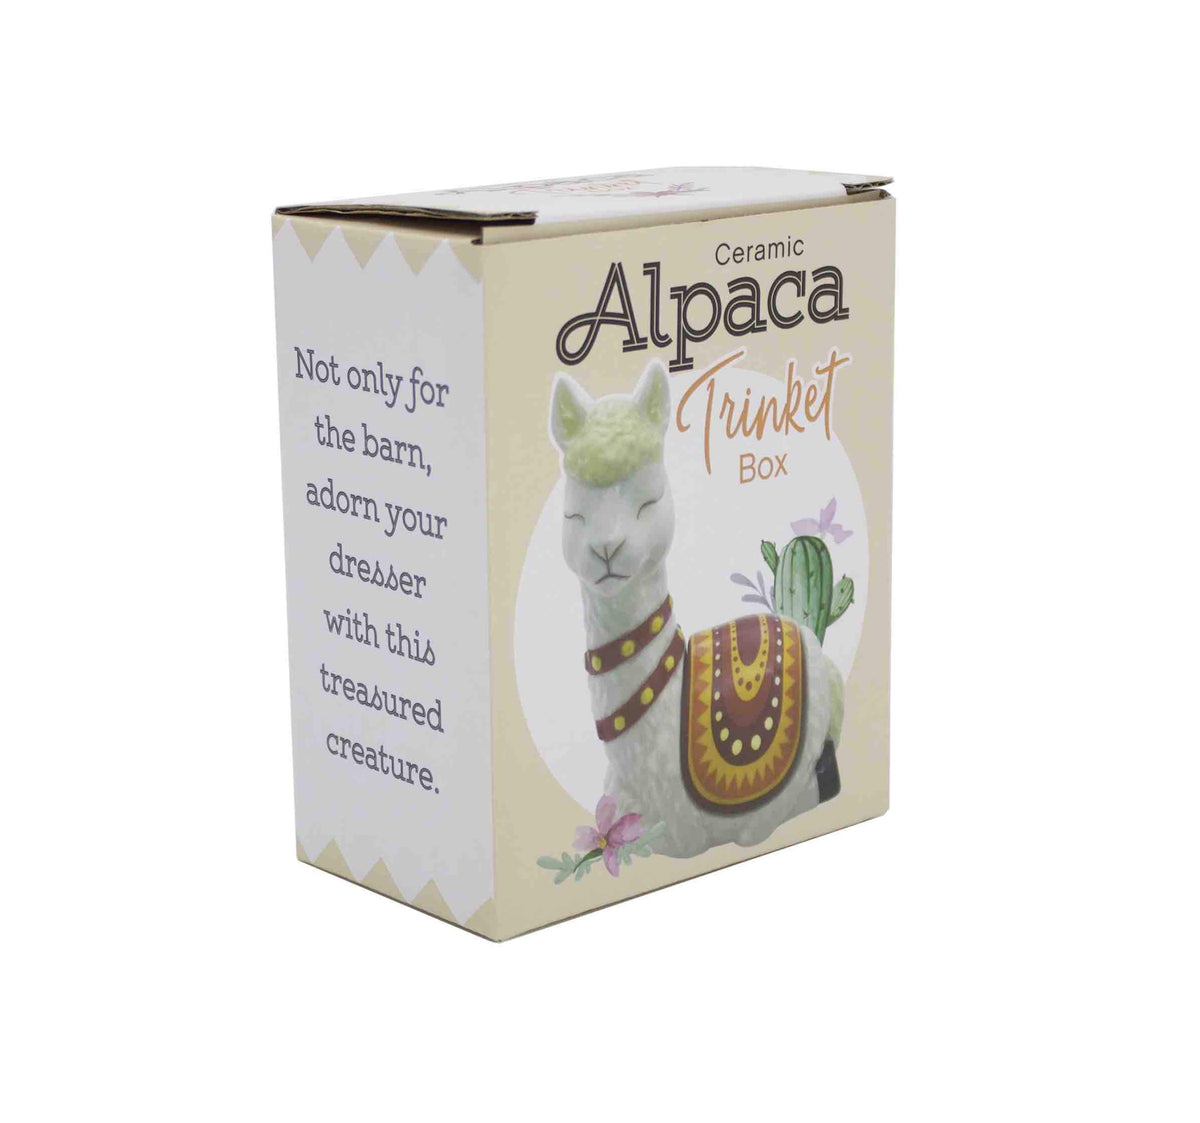 Alpaca Trinket Box